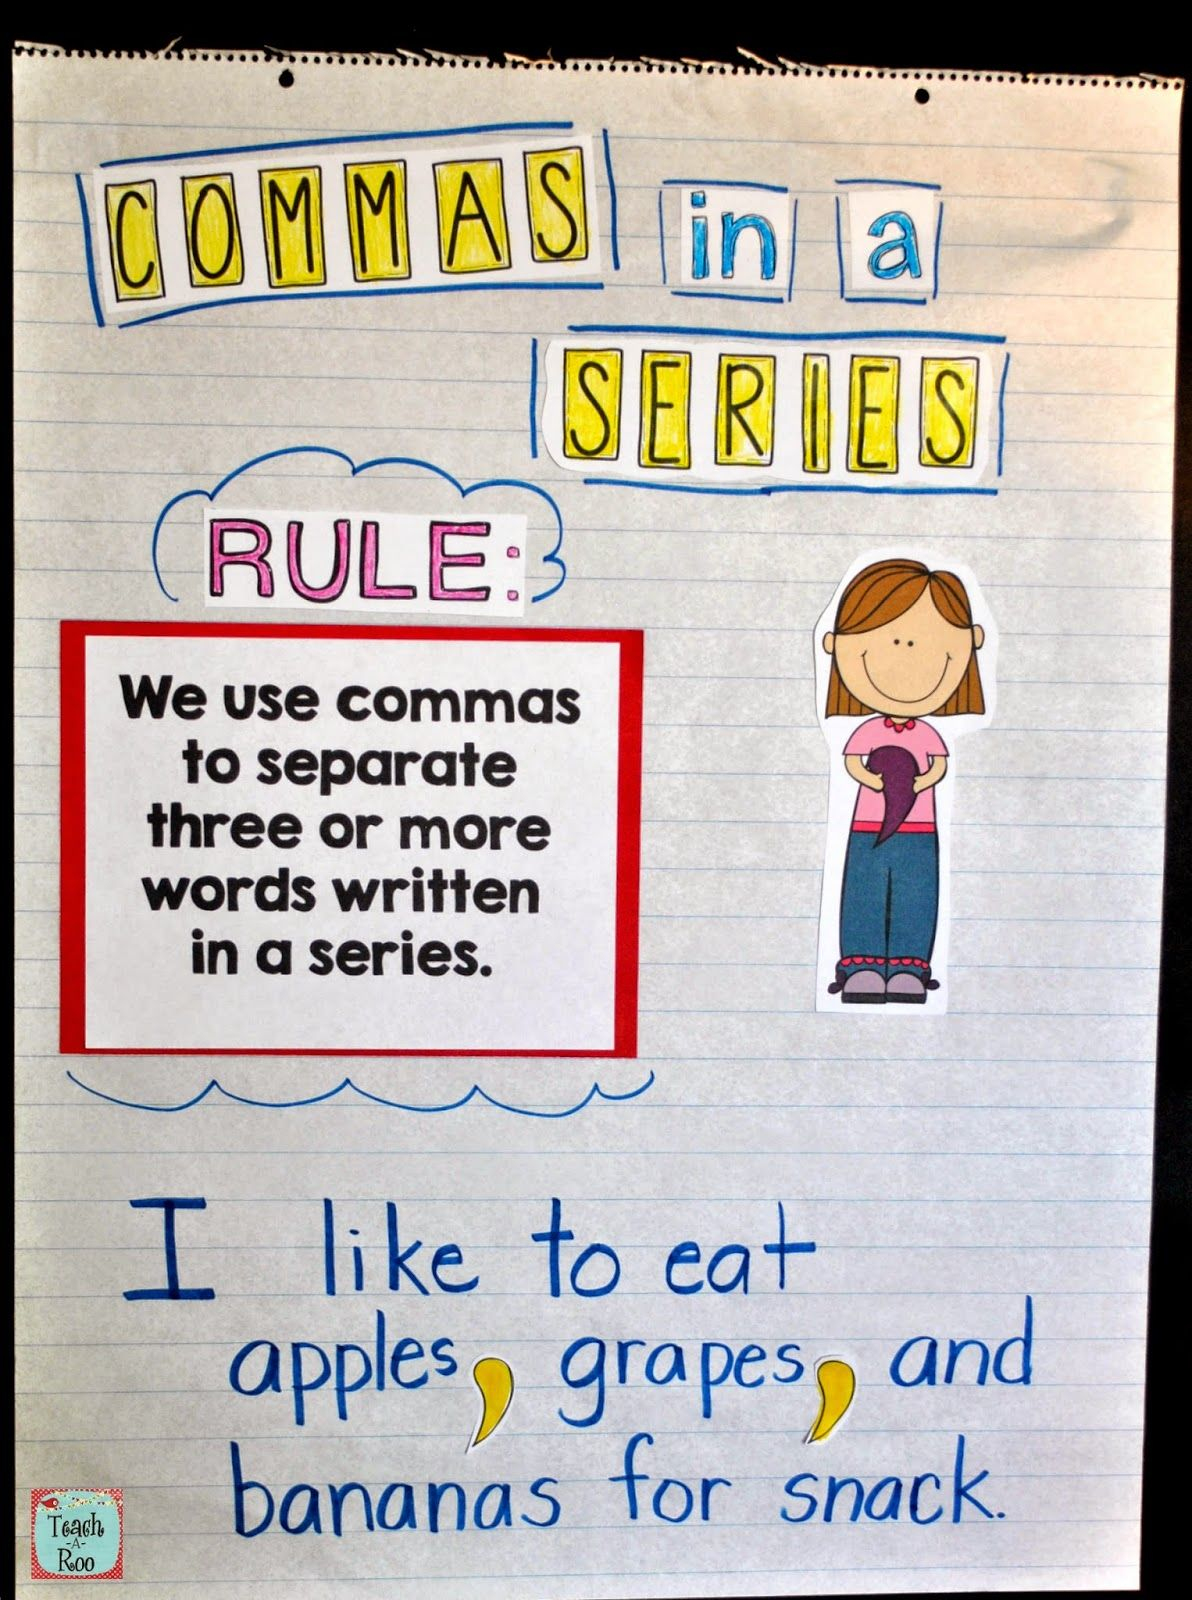 Teach A Roo Commas In A Series